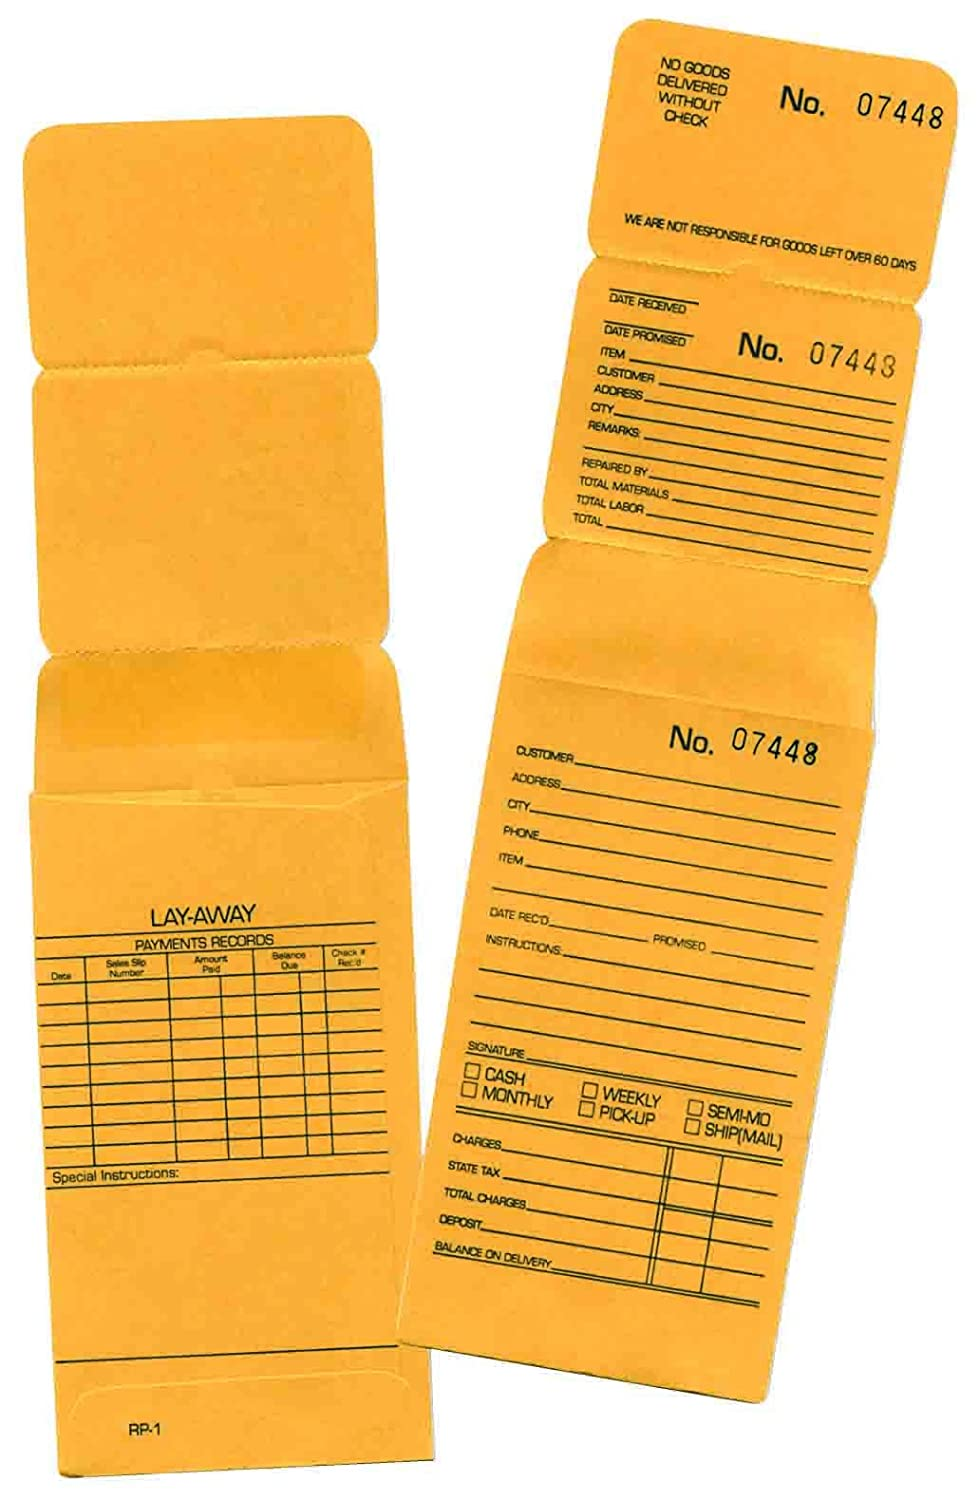 100 Jewelry Repair Envelopes Numbered bei Consecutive Order